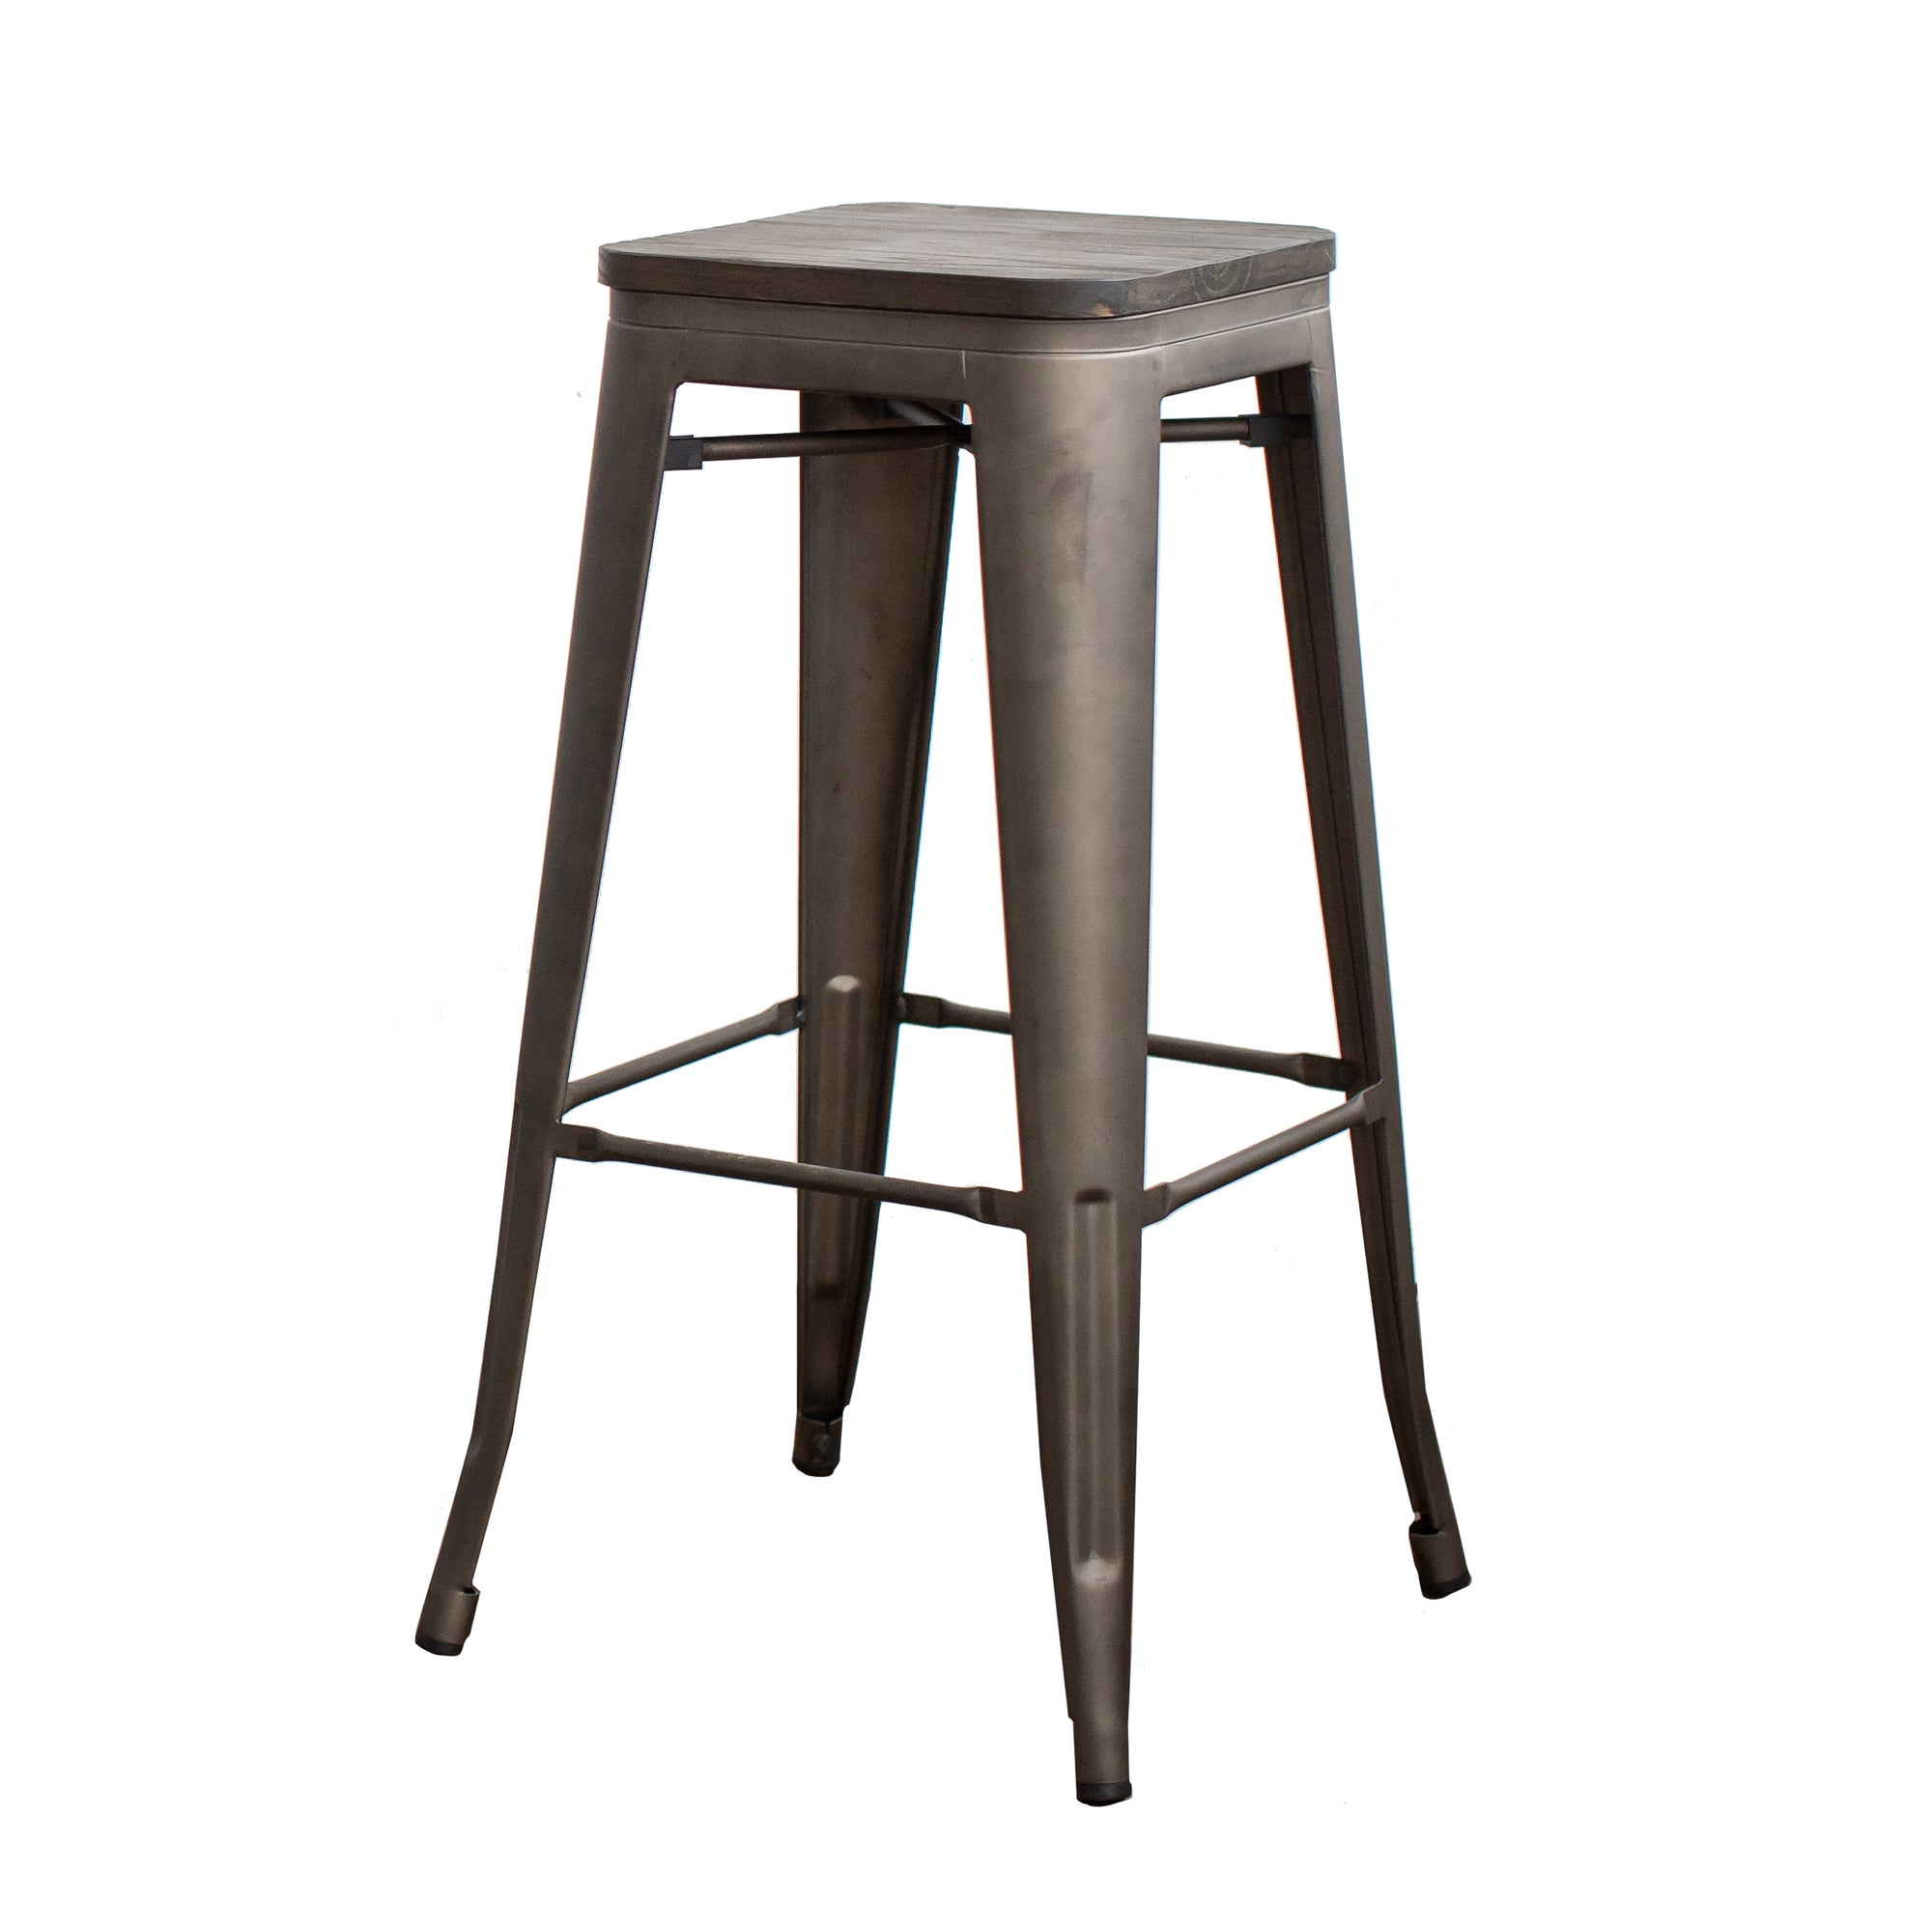 30 Inch Metal Bar Stools With Wooden Seat Set Of 4 Buschman Store